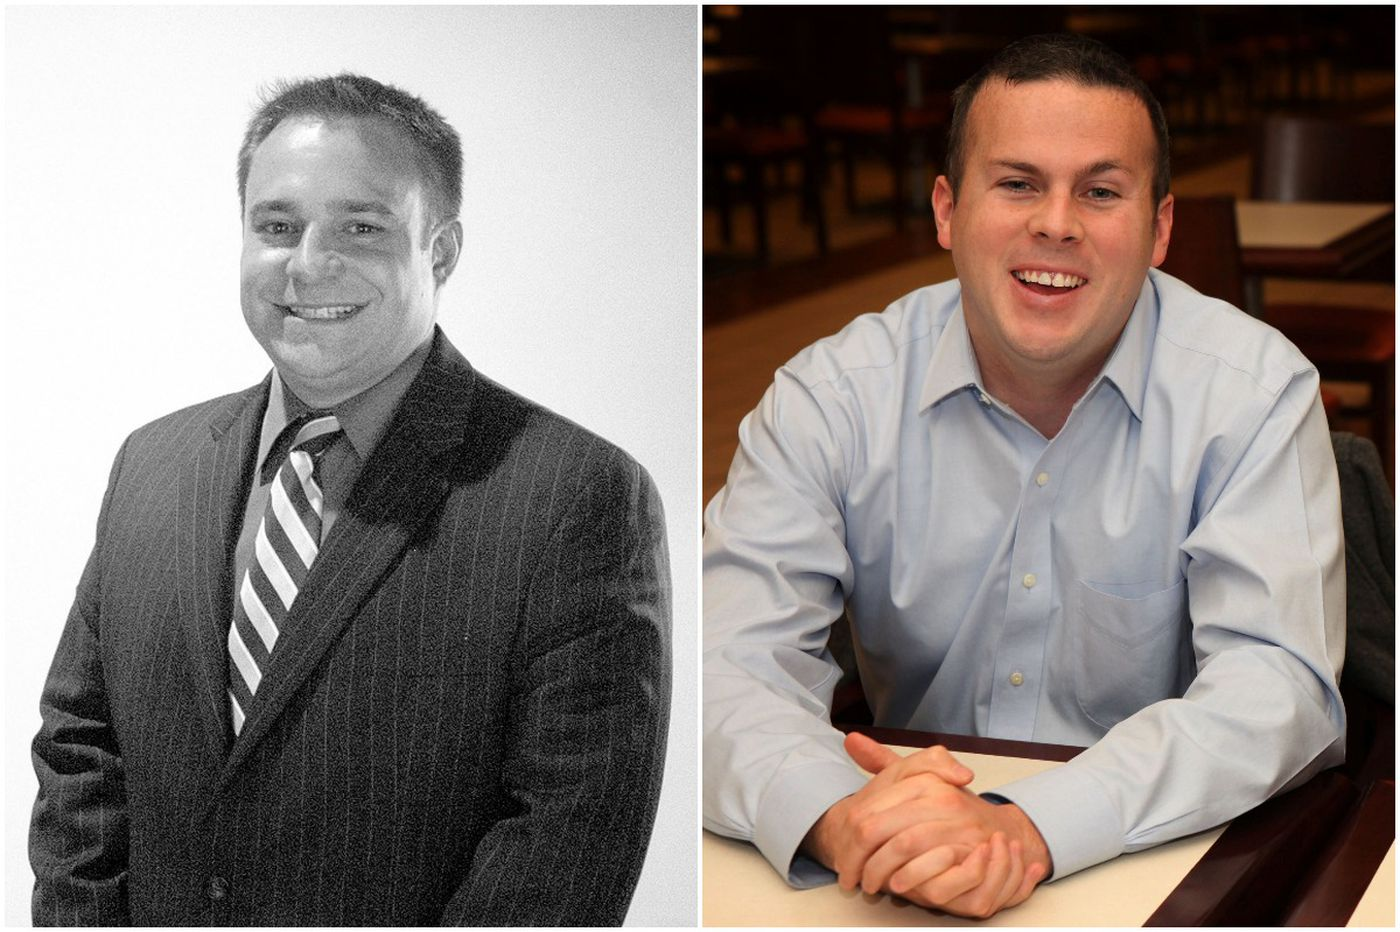 Northeast Philly Dem feud escalates with salacious allegation, defamation lawsuit   Philly Clout